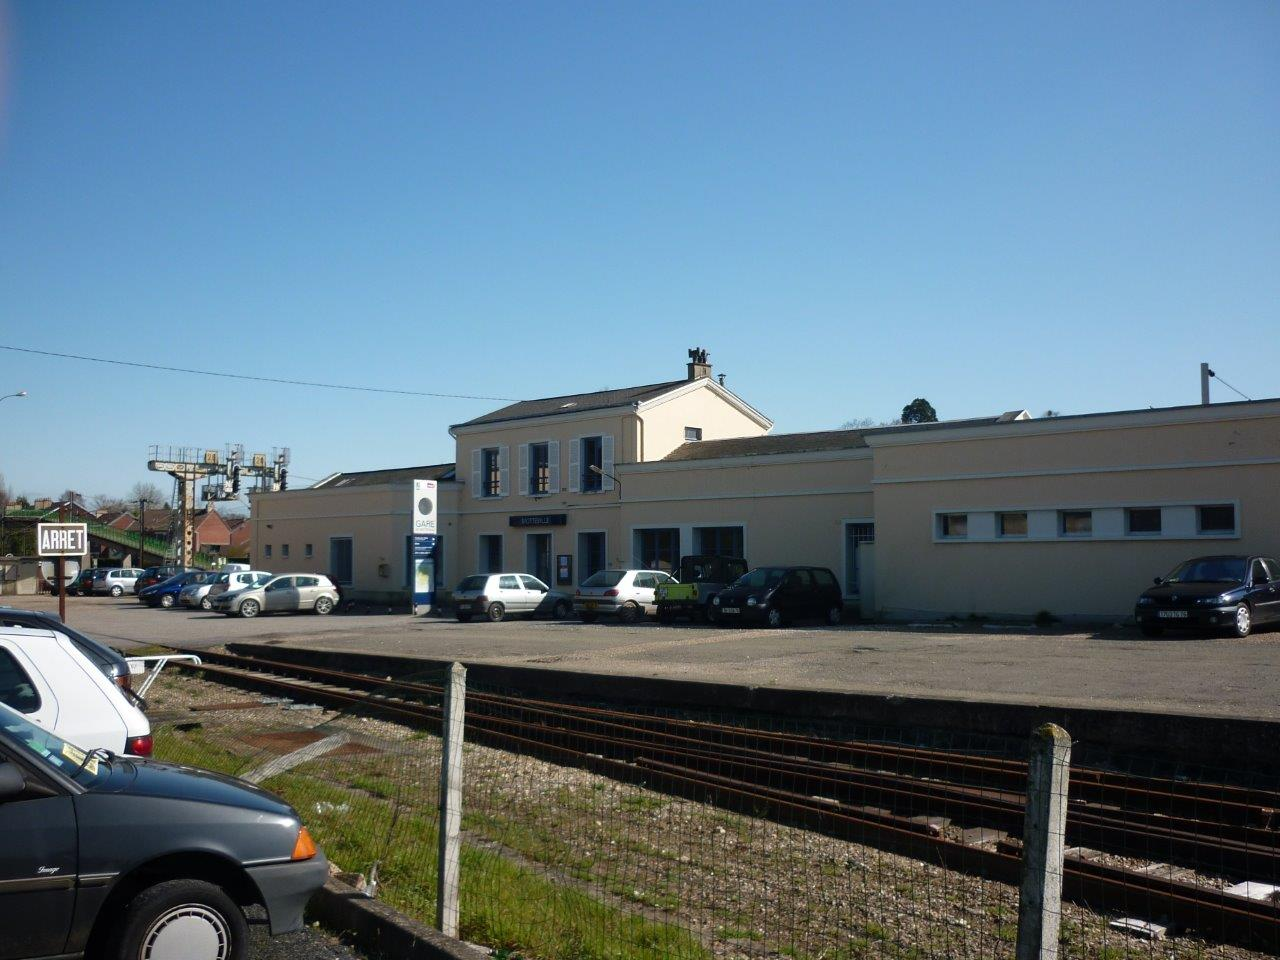 gare-de-motteville-train-station